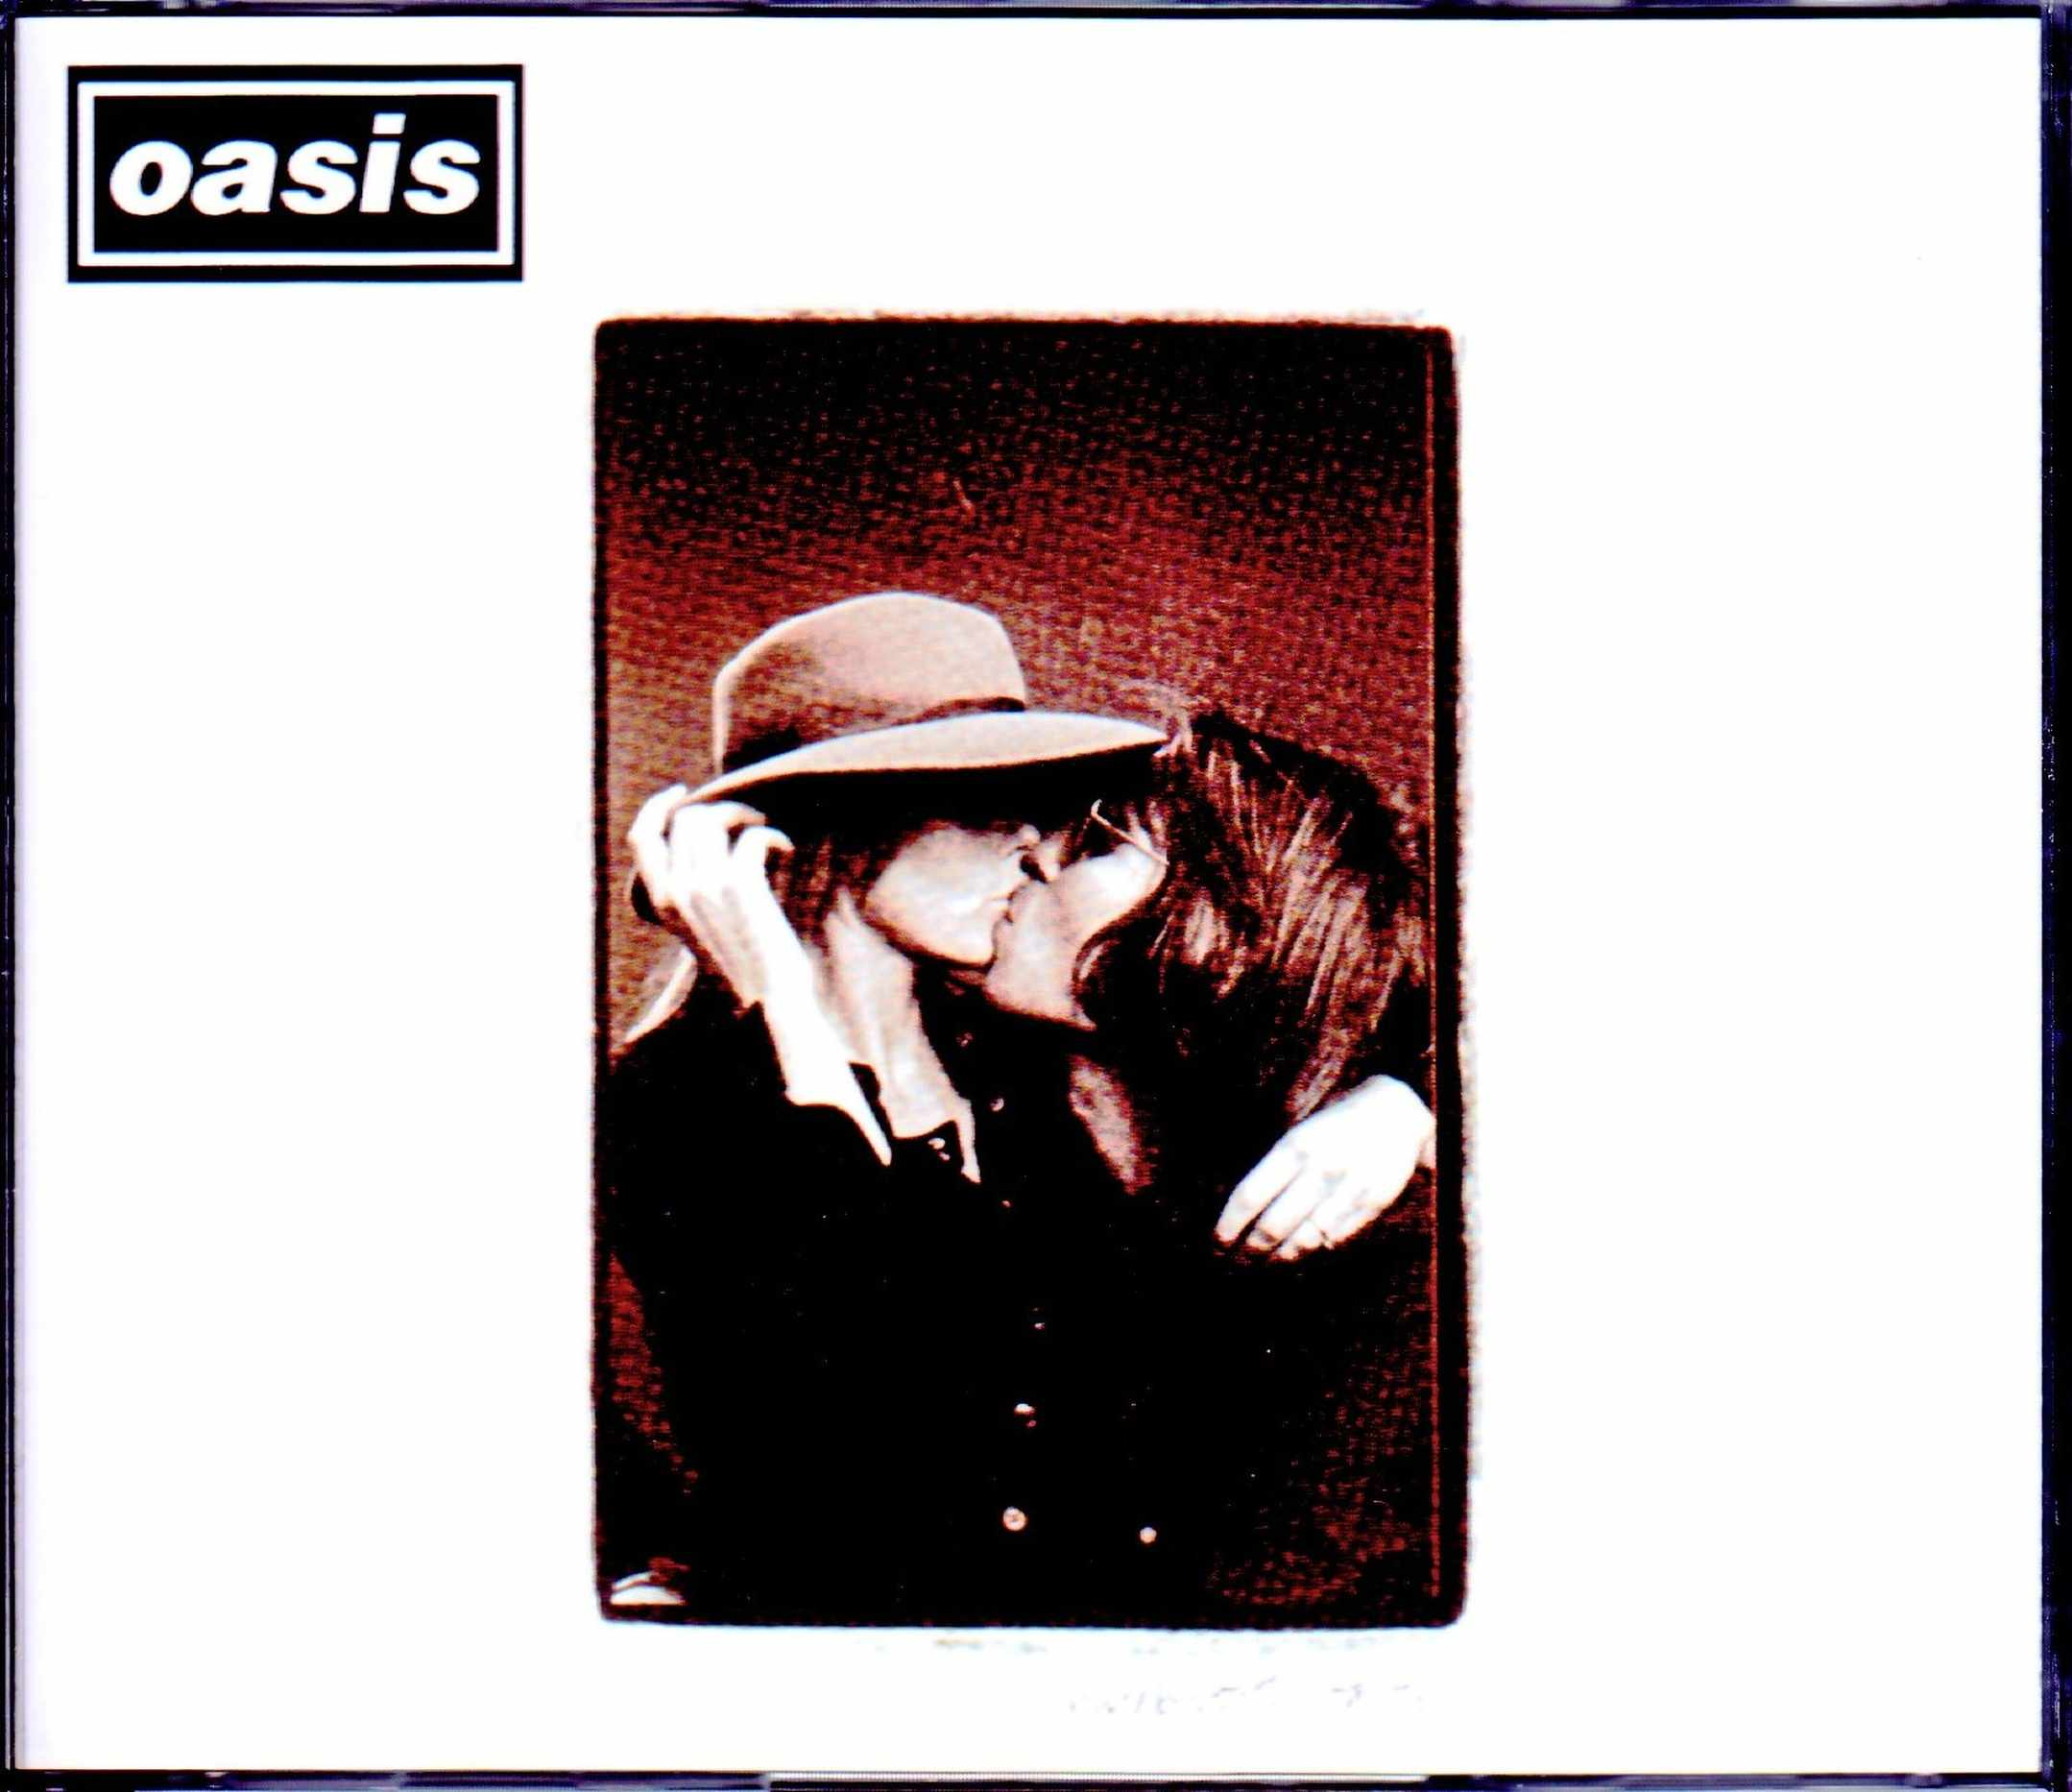 Oasis オアシス/ネプワース伝説の2日間・完全版 England,UK 2Days Complete & more